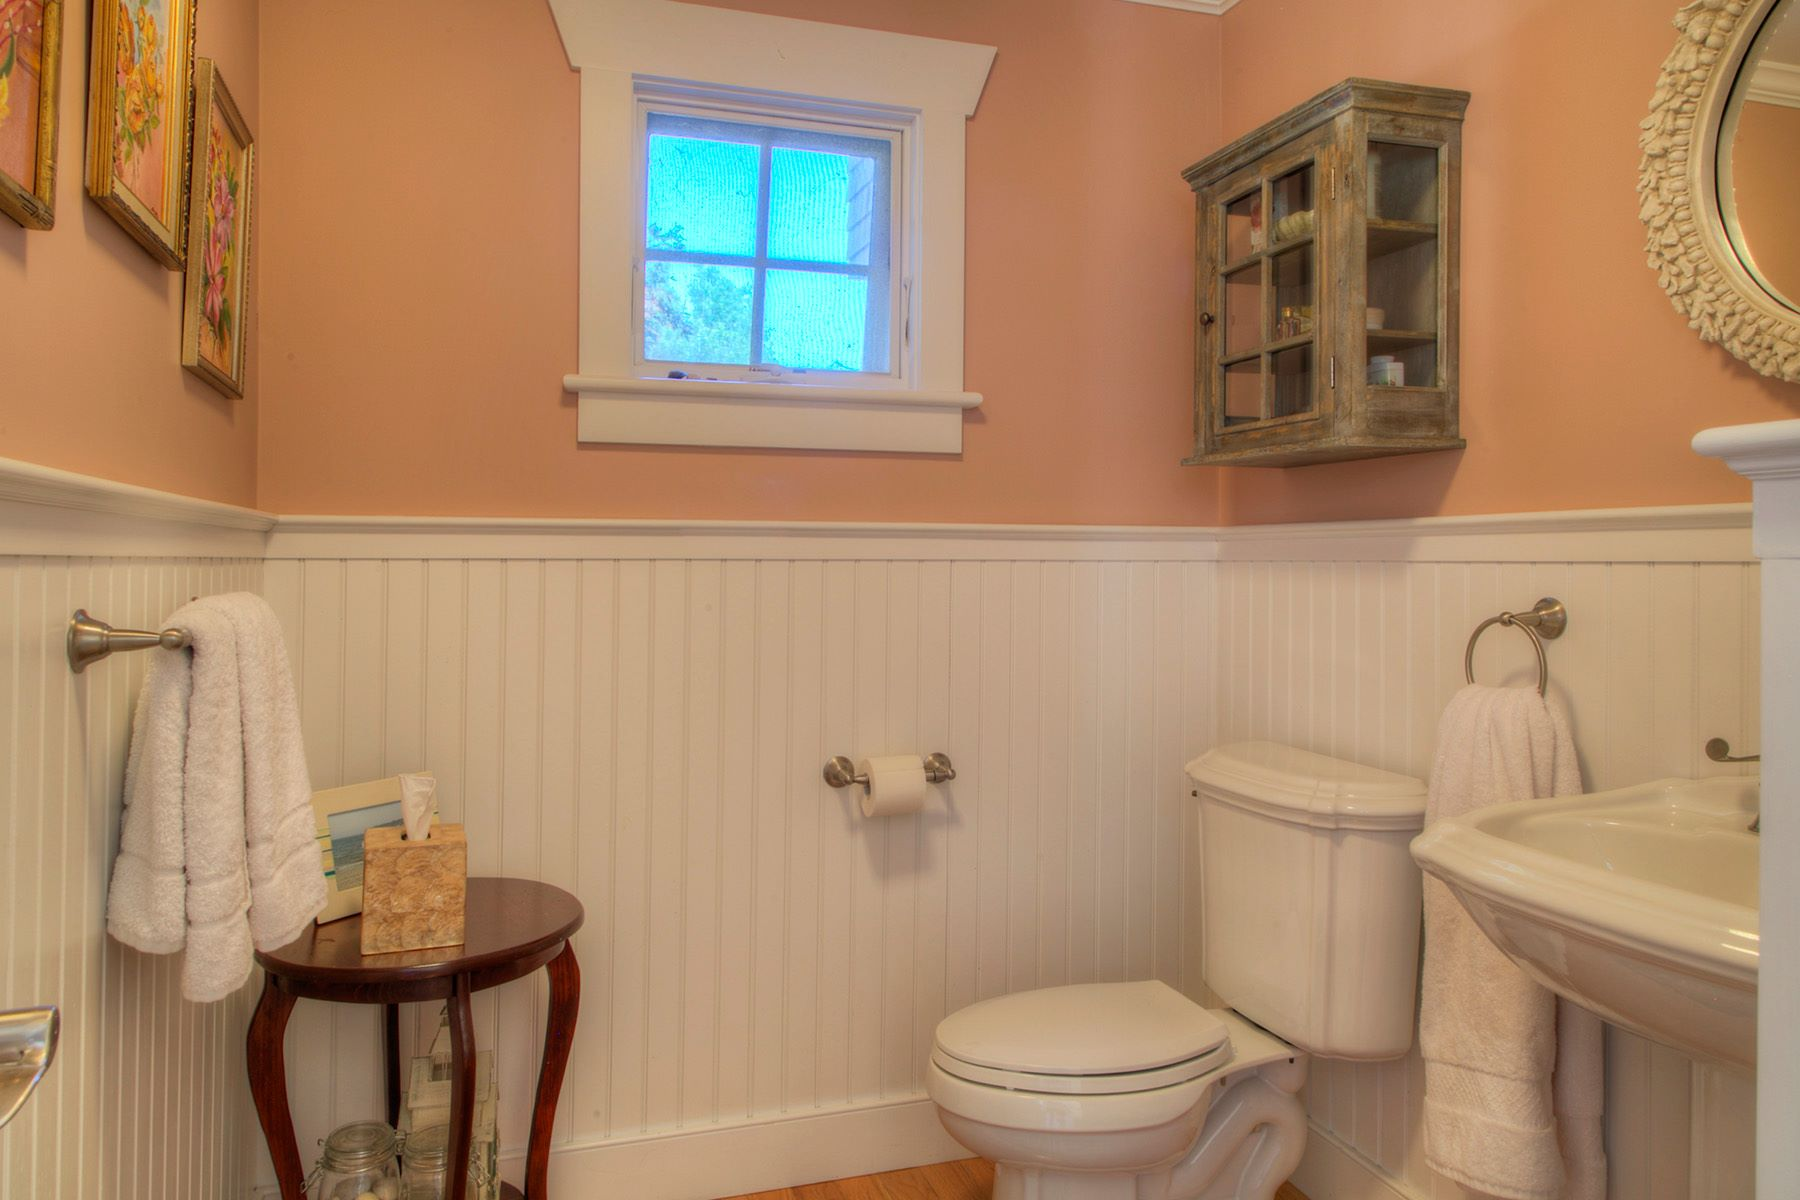 Additional photo for property listing at Beavertail Point 115 Beavertail Road Jamestown, Rhode Island 02835 United States